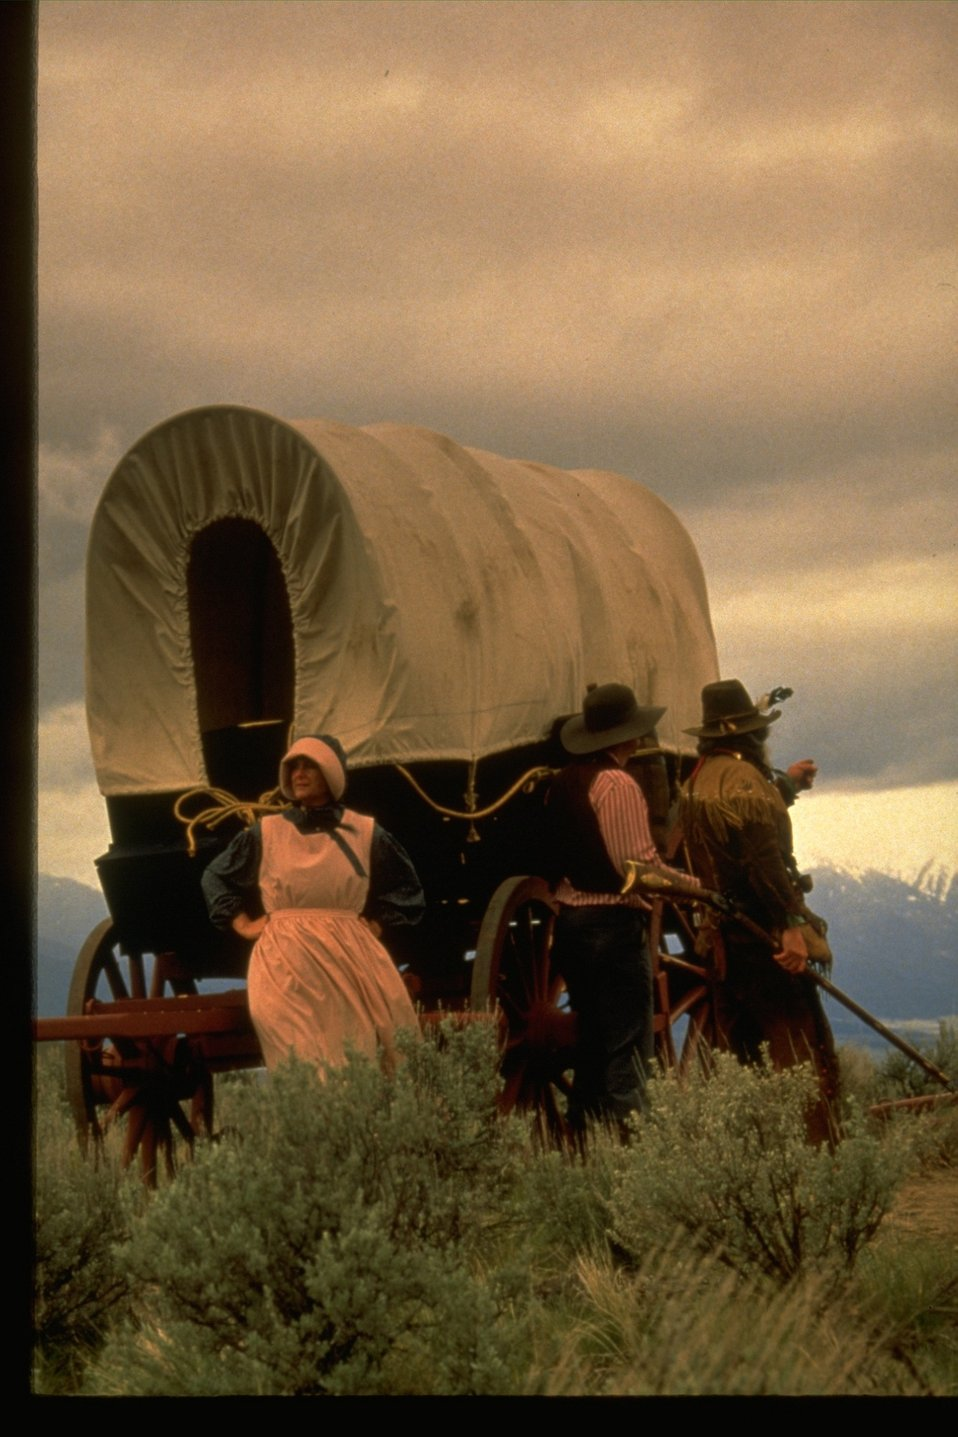 Re-enactment with pioneers and wagon.